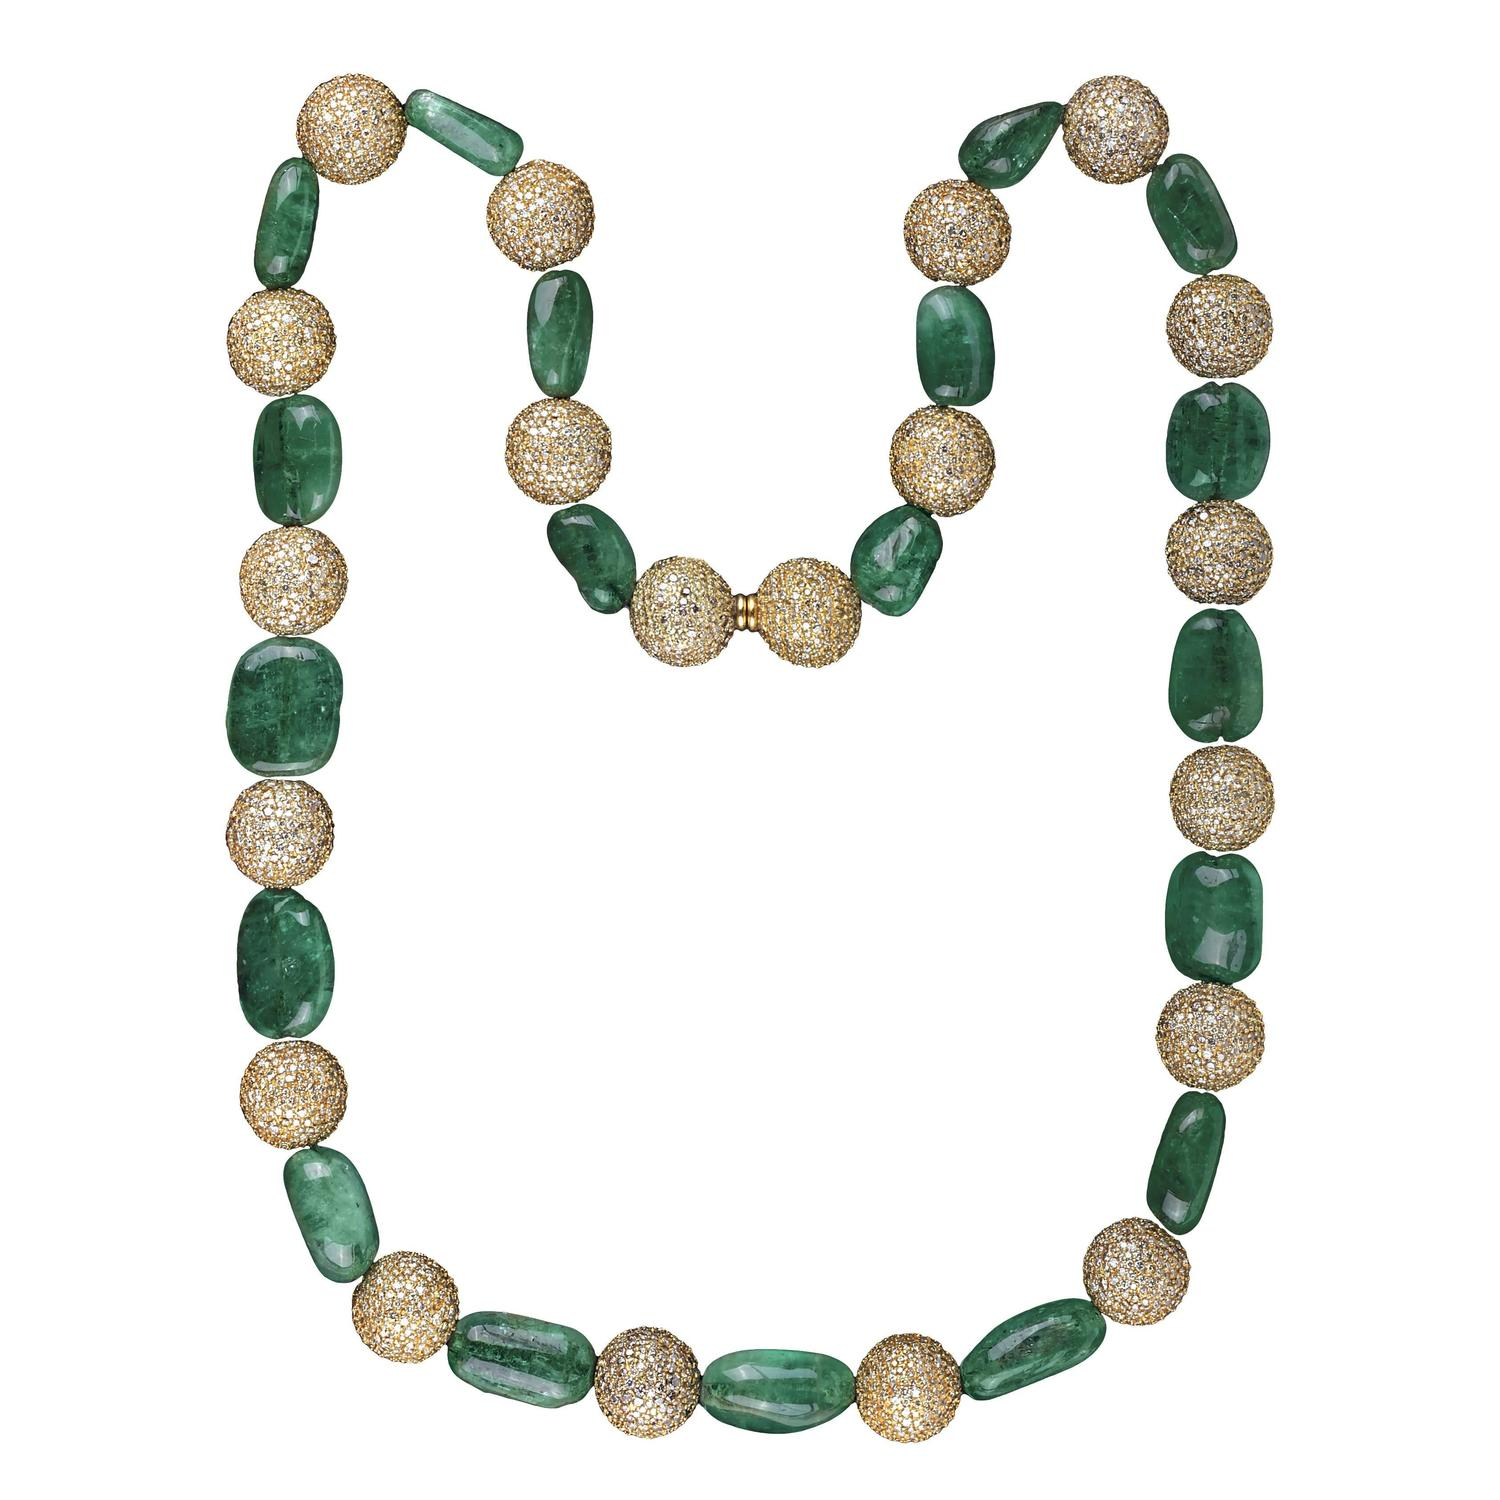 Emerald Bead Beads: Colombian Emerald Beads And Diamond Necklace For Sale At